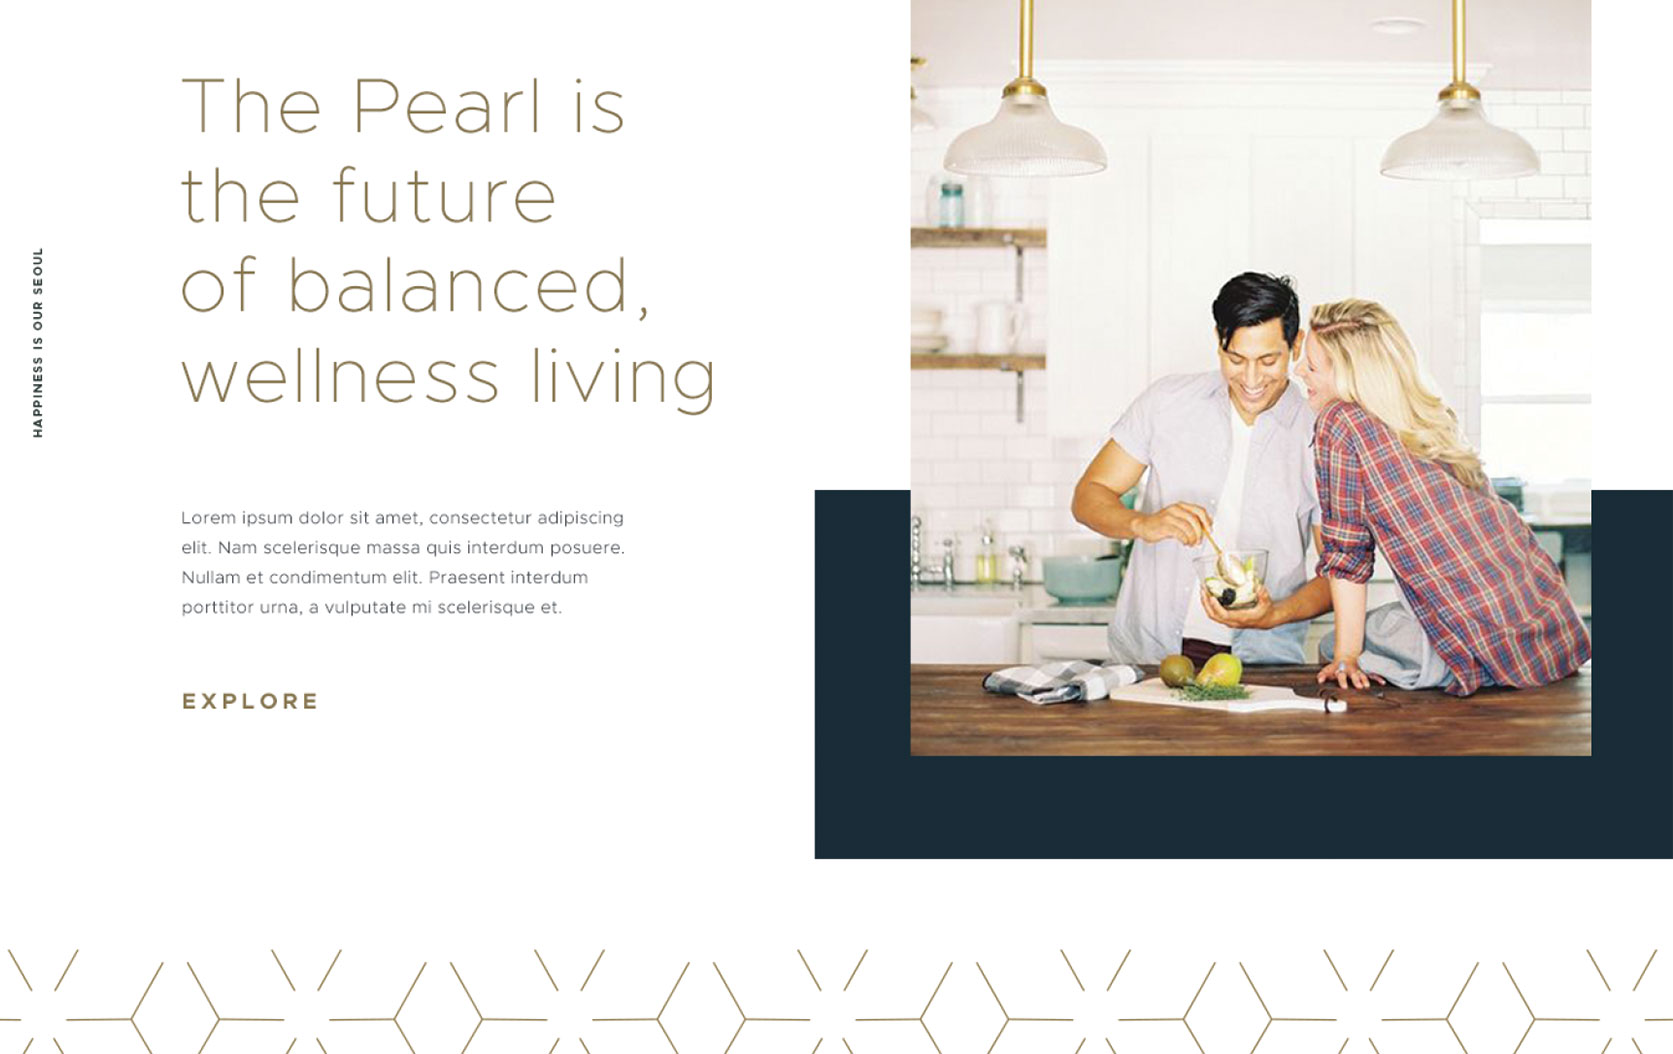 the pearl multifamily apartment market study uncomn projects